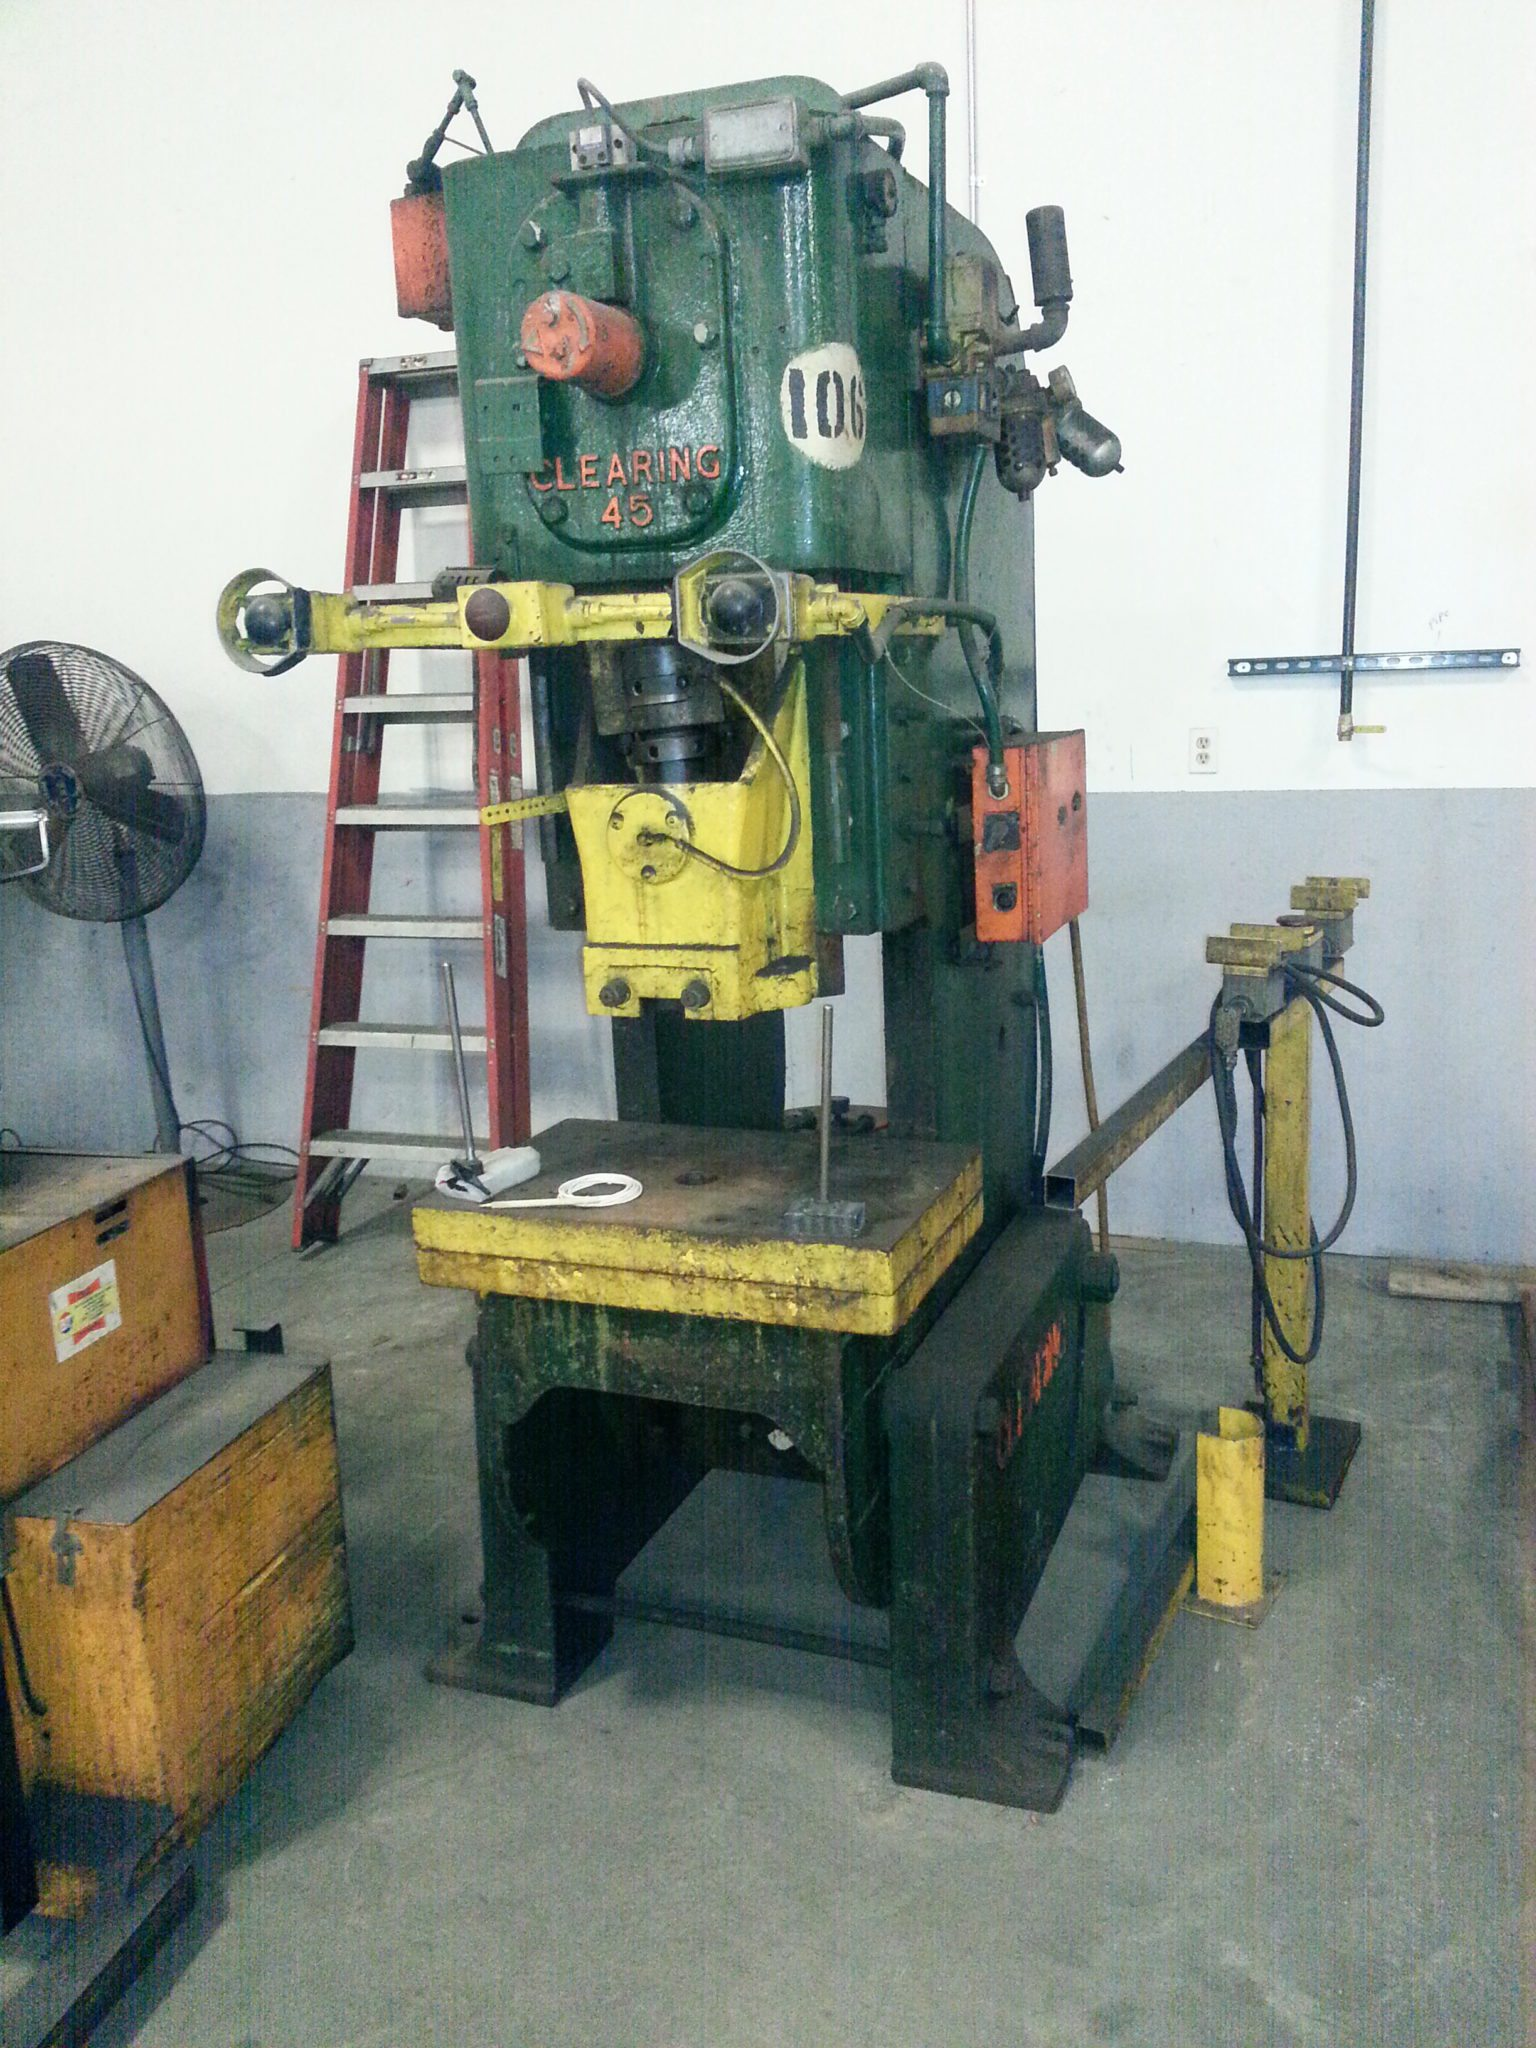 45 Ton Clearing Press For Sale